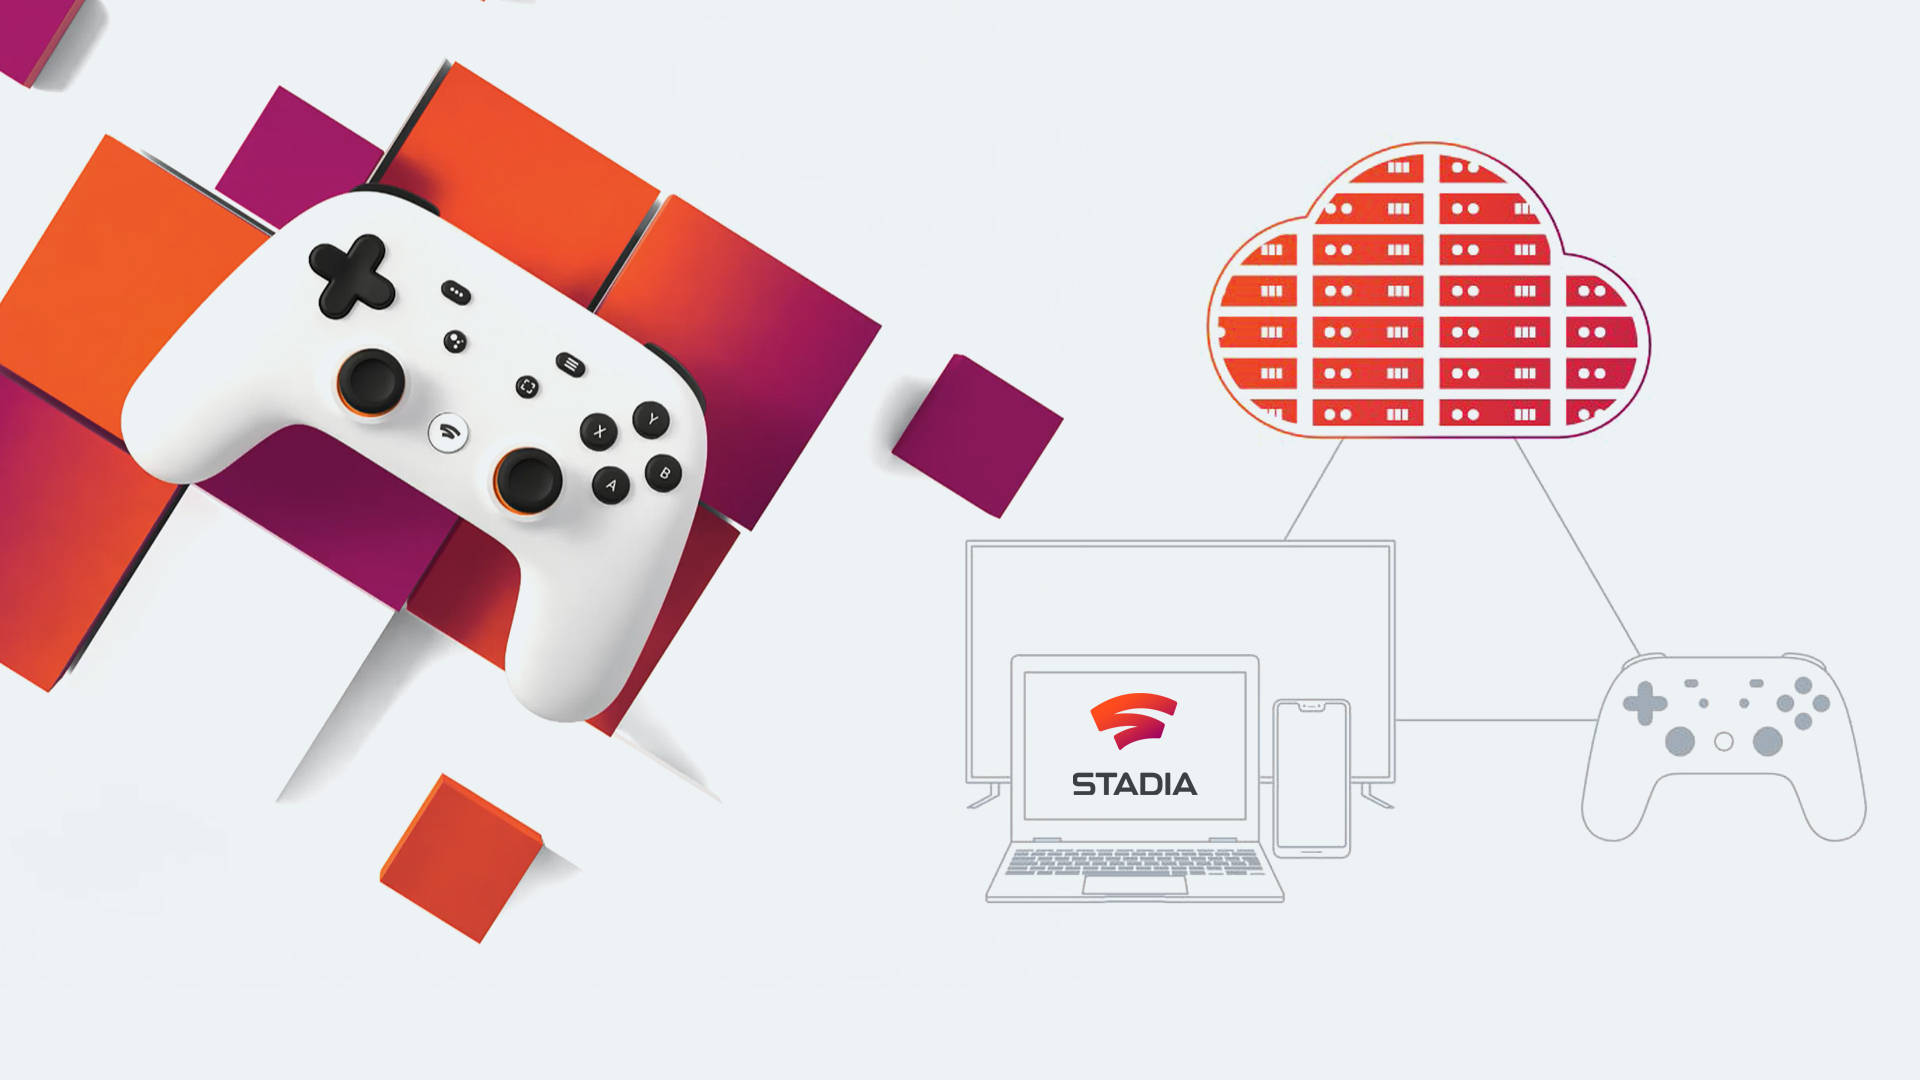 google-stadia-failed-jpg.9239